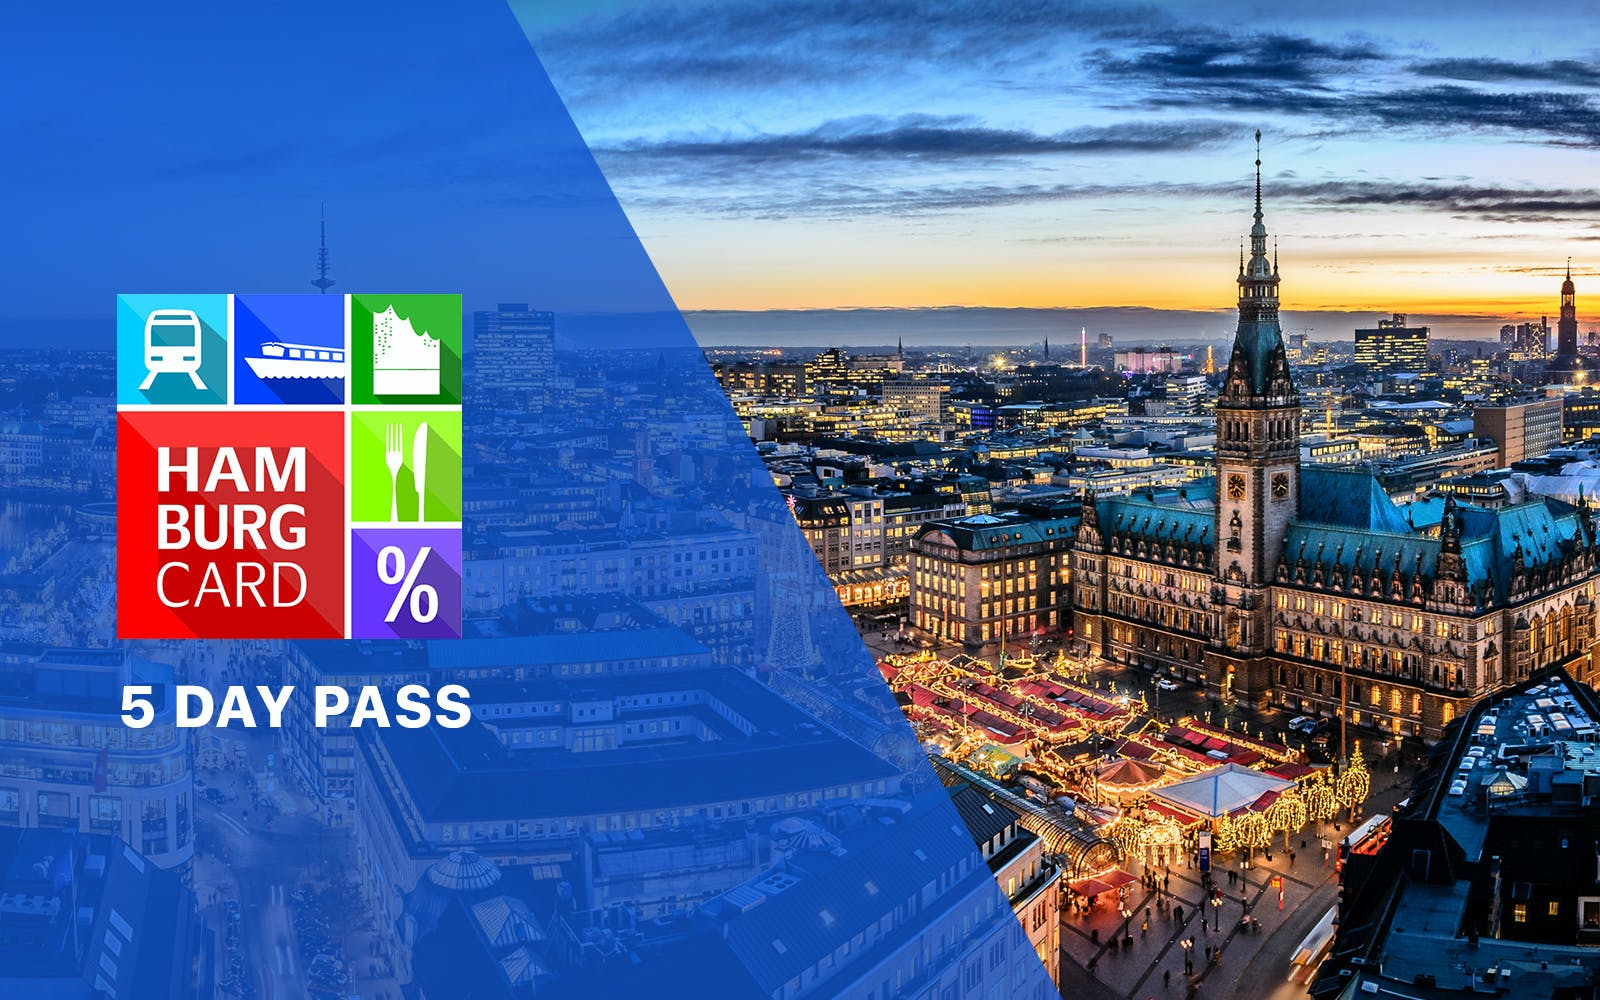 Hamburg Card - 5 day pass